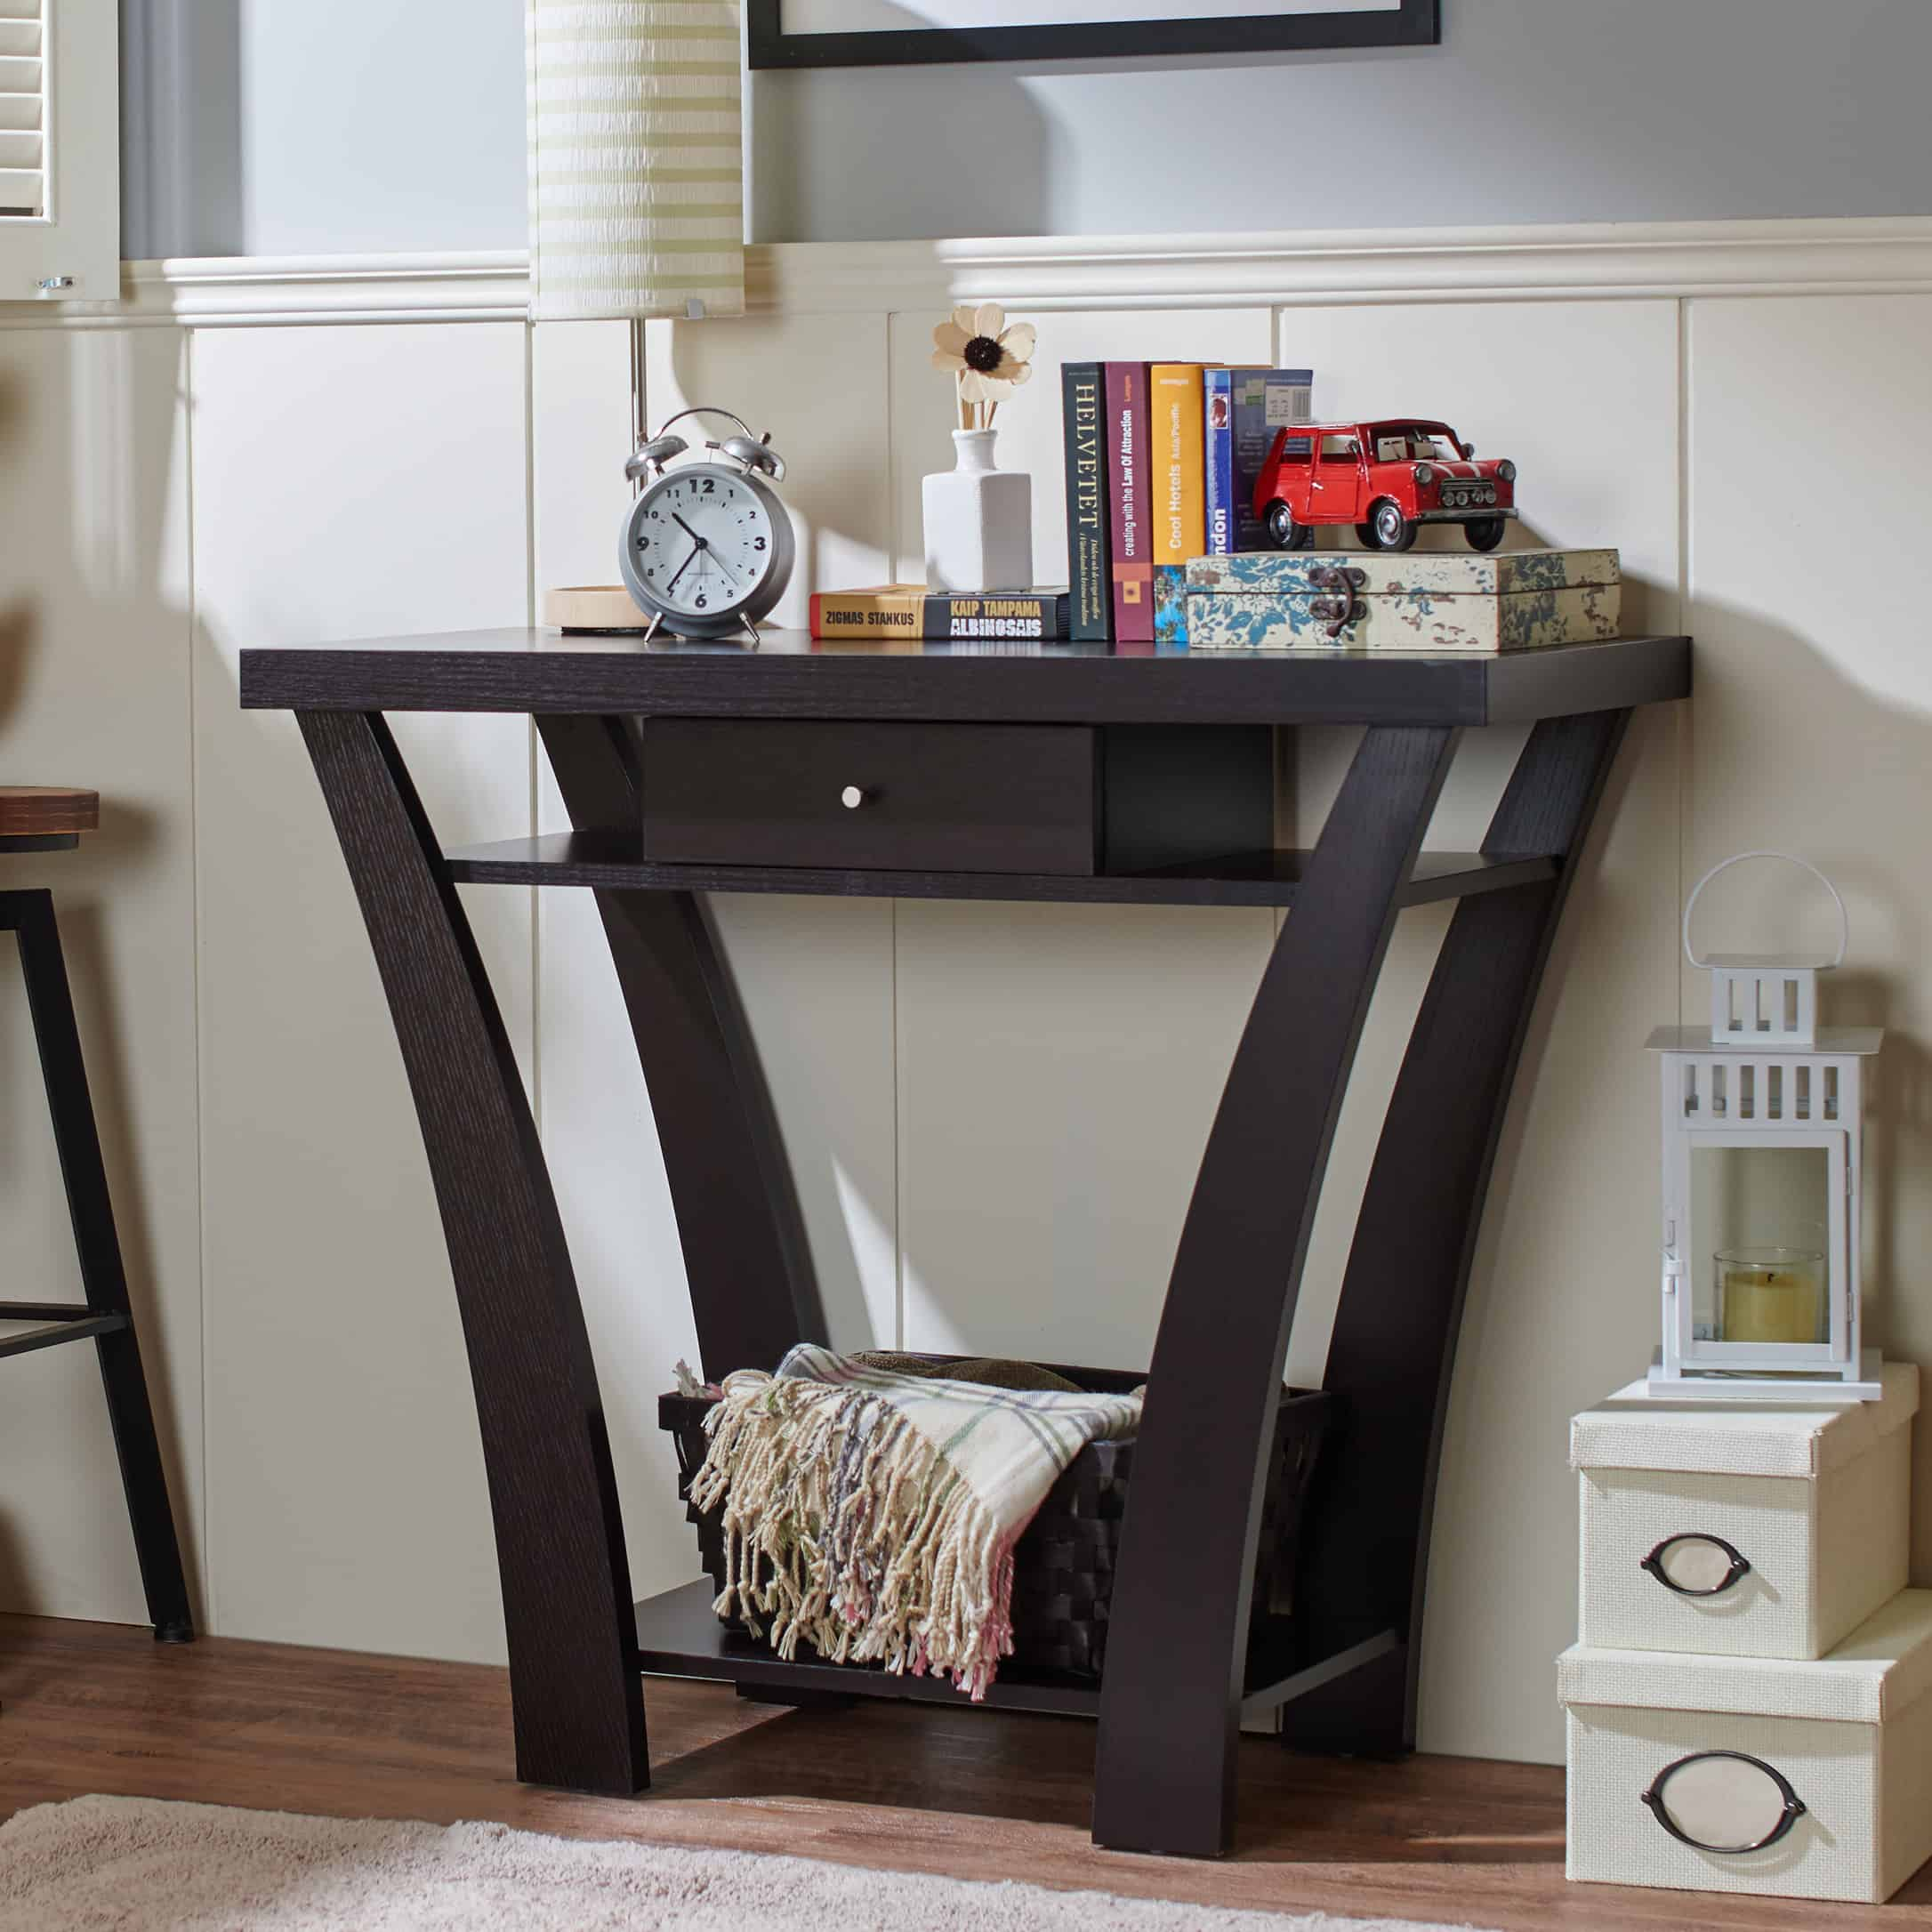 43 Types Of Tables For Your Home (2019 Buying Guide